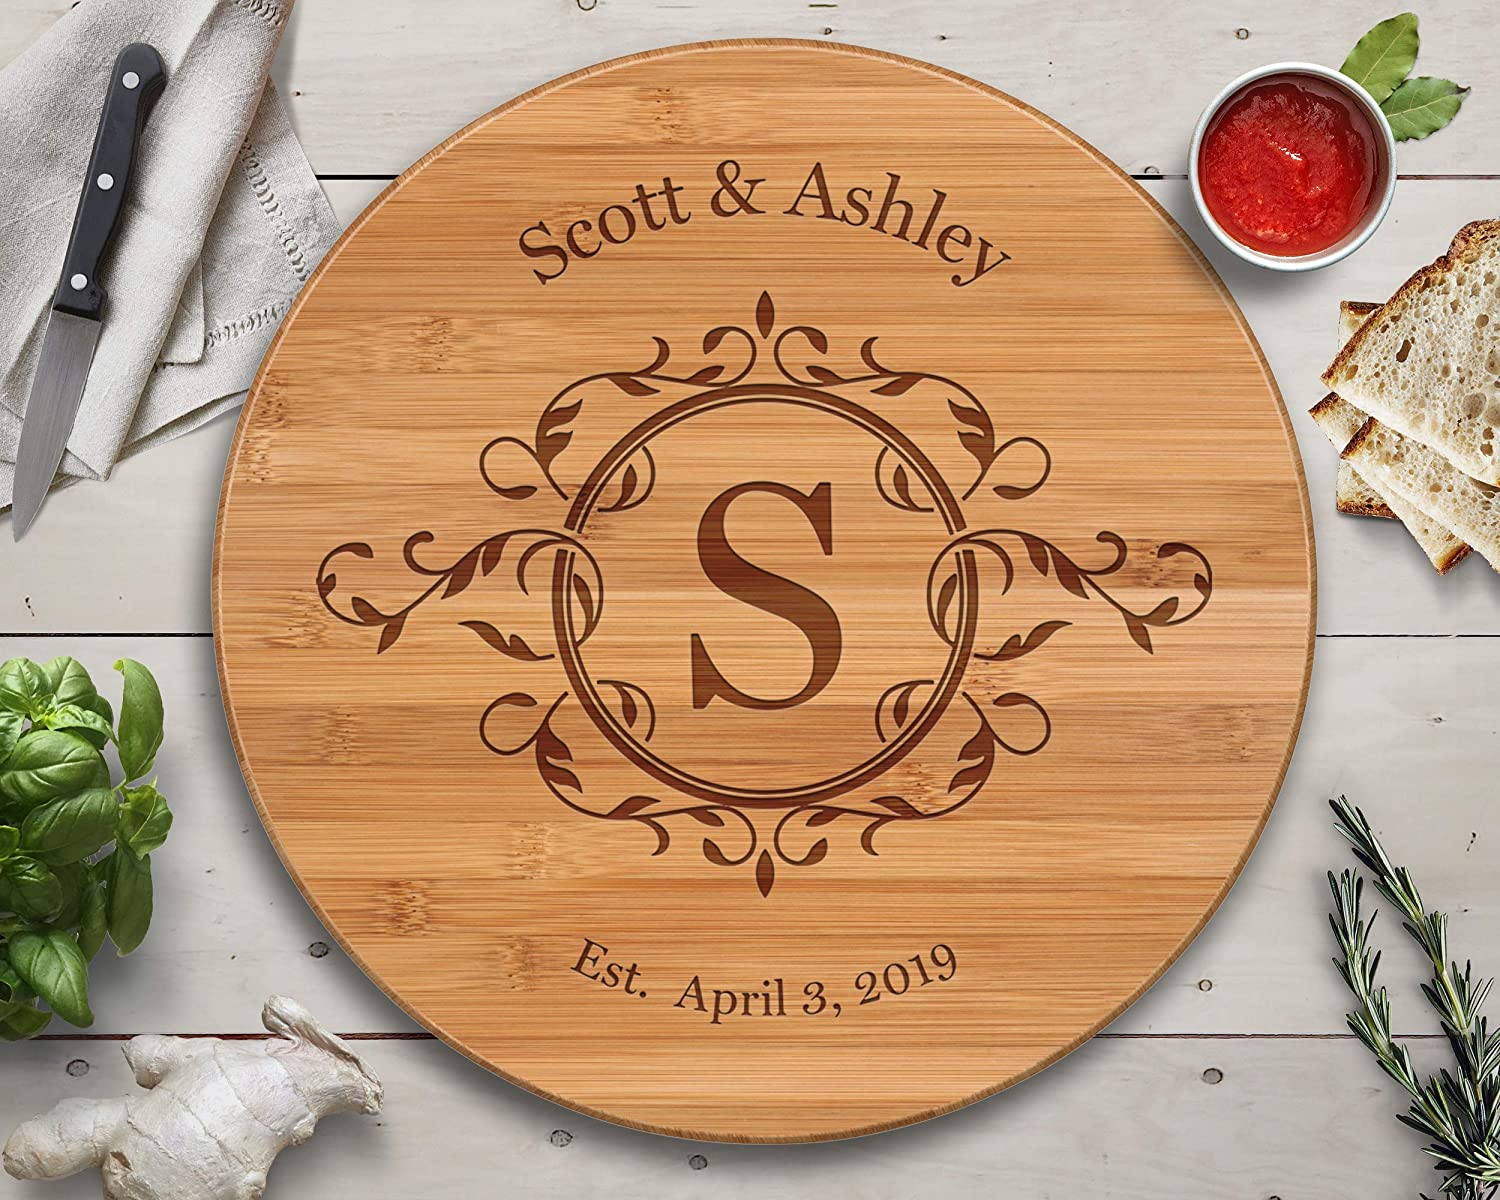 Beautiful Gift for Mom Mom Gifts Turntable Personalized Lazy Susan Best Mothers Day Gifts Thoughtful Gifts Lazy Susan Mothers Day 2019 Bamboo Custom Cutting Board Gifts for Mom